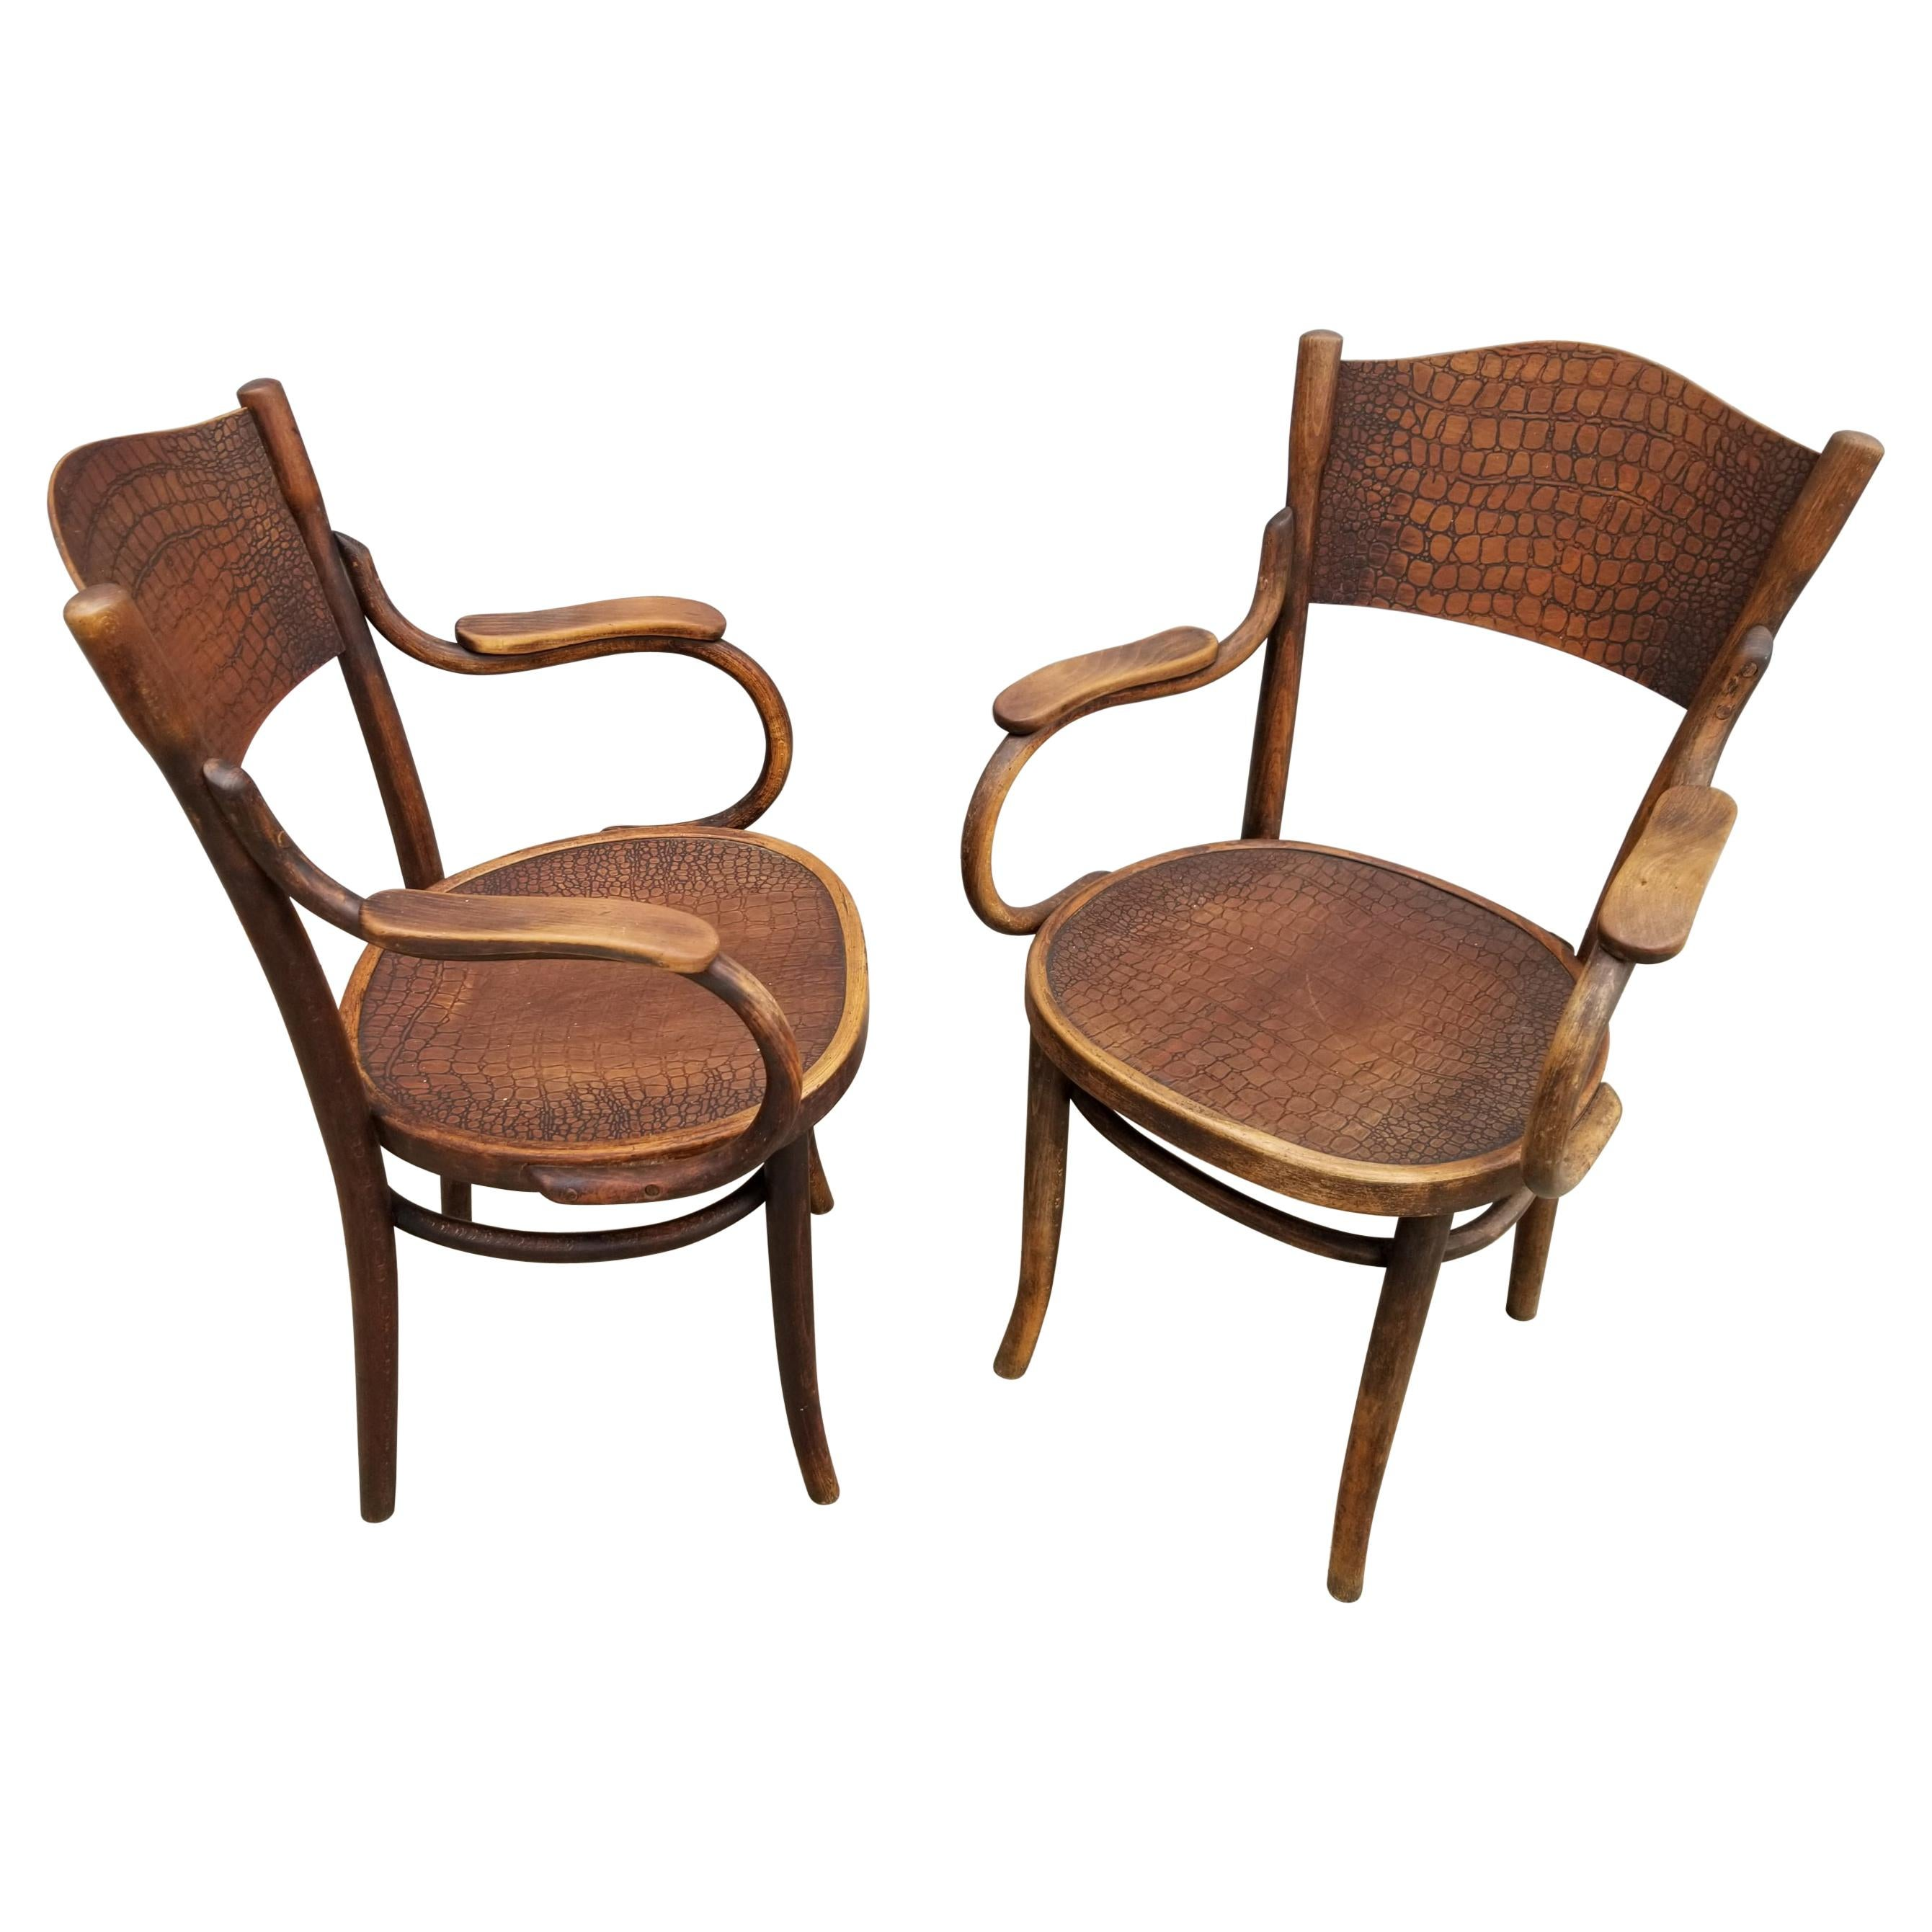 Pair of Thonet Bentwood Chairs, Early 20th Century